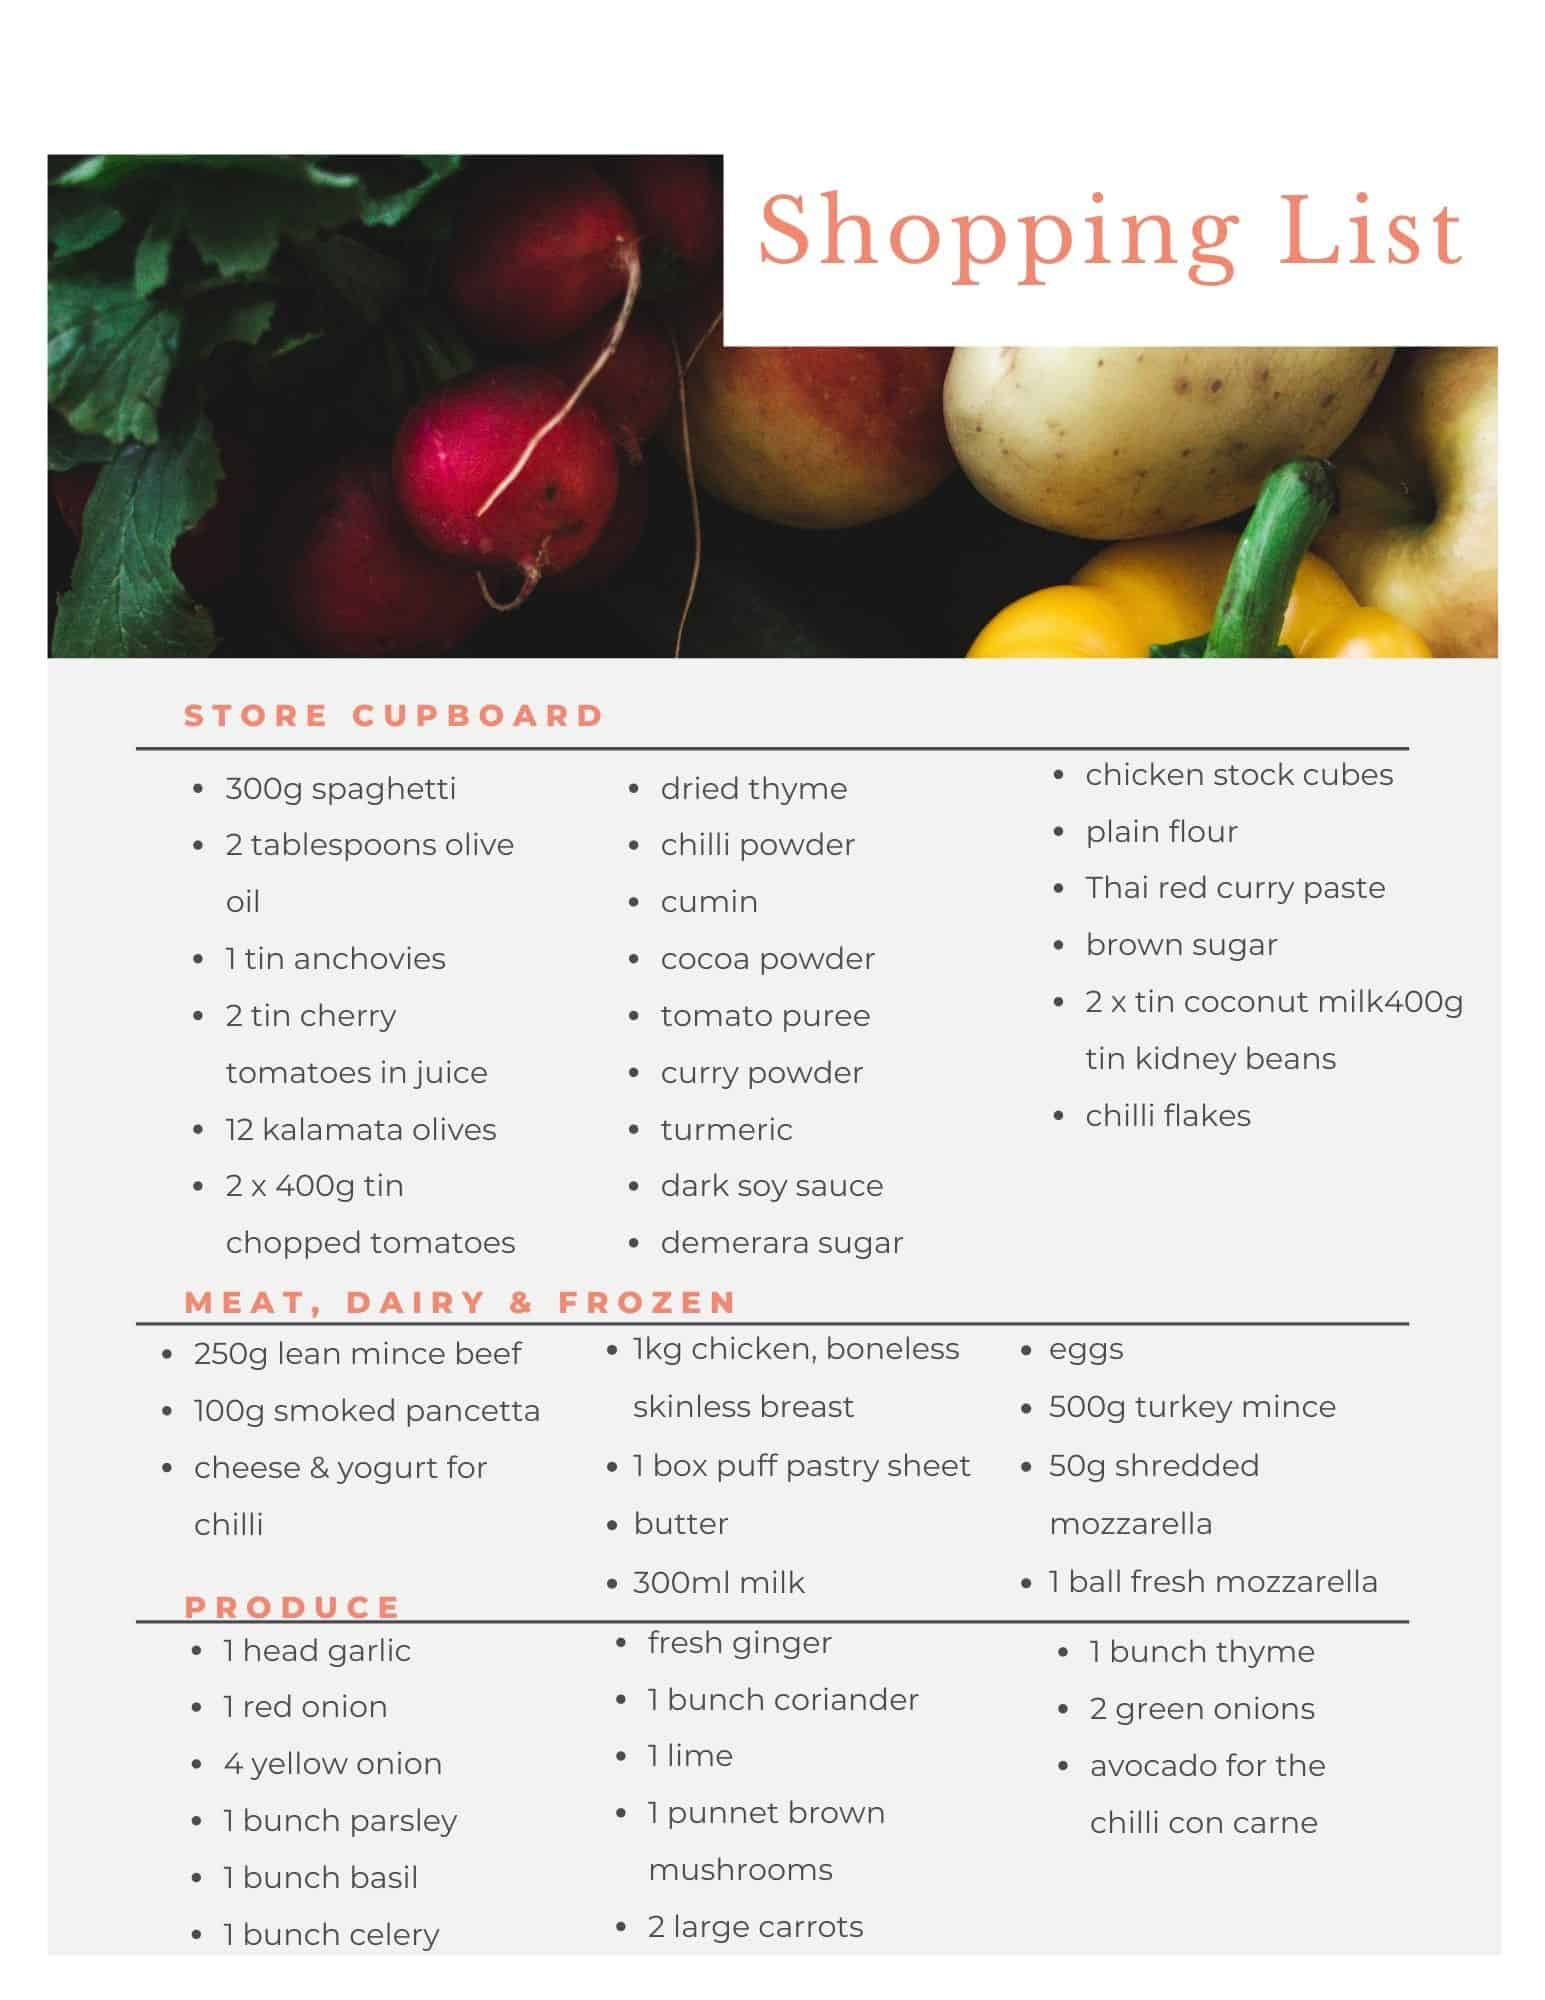 Aldi budget shopping list for the weekly meal plan